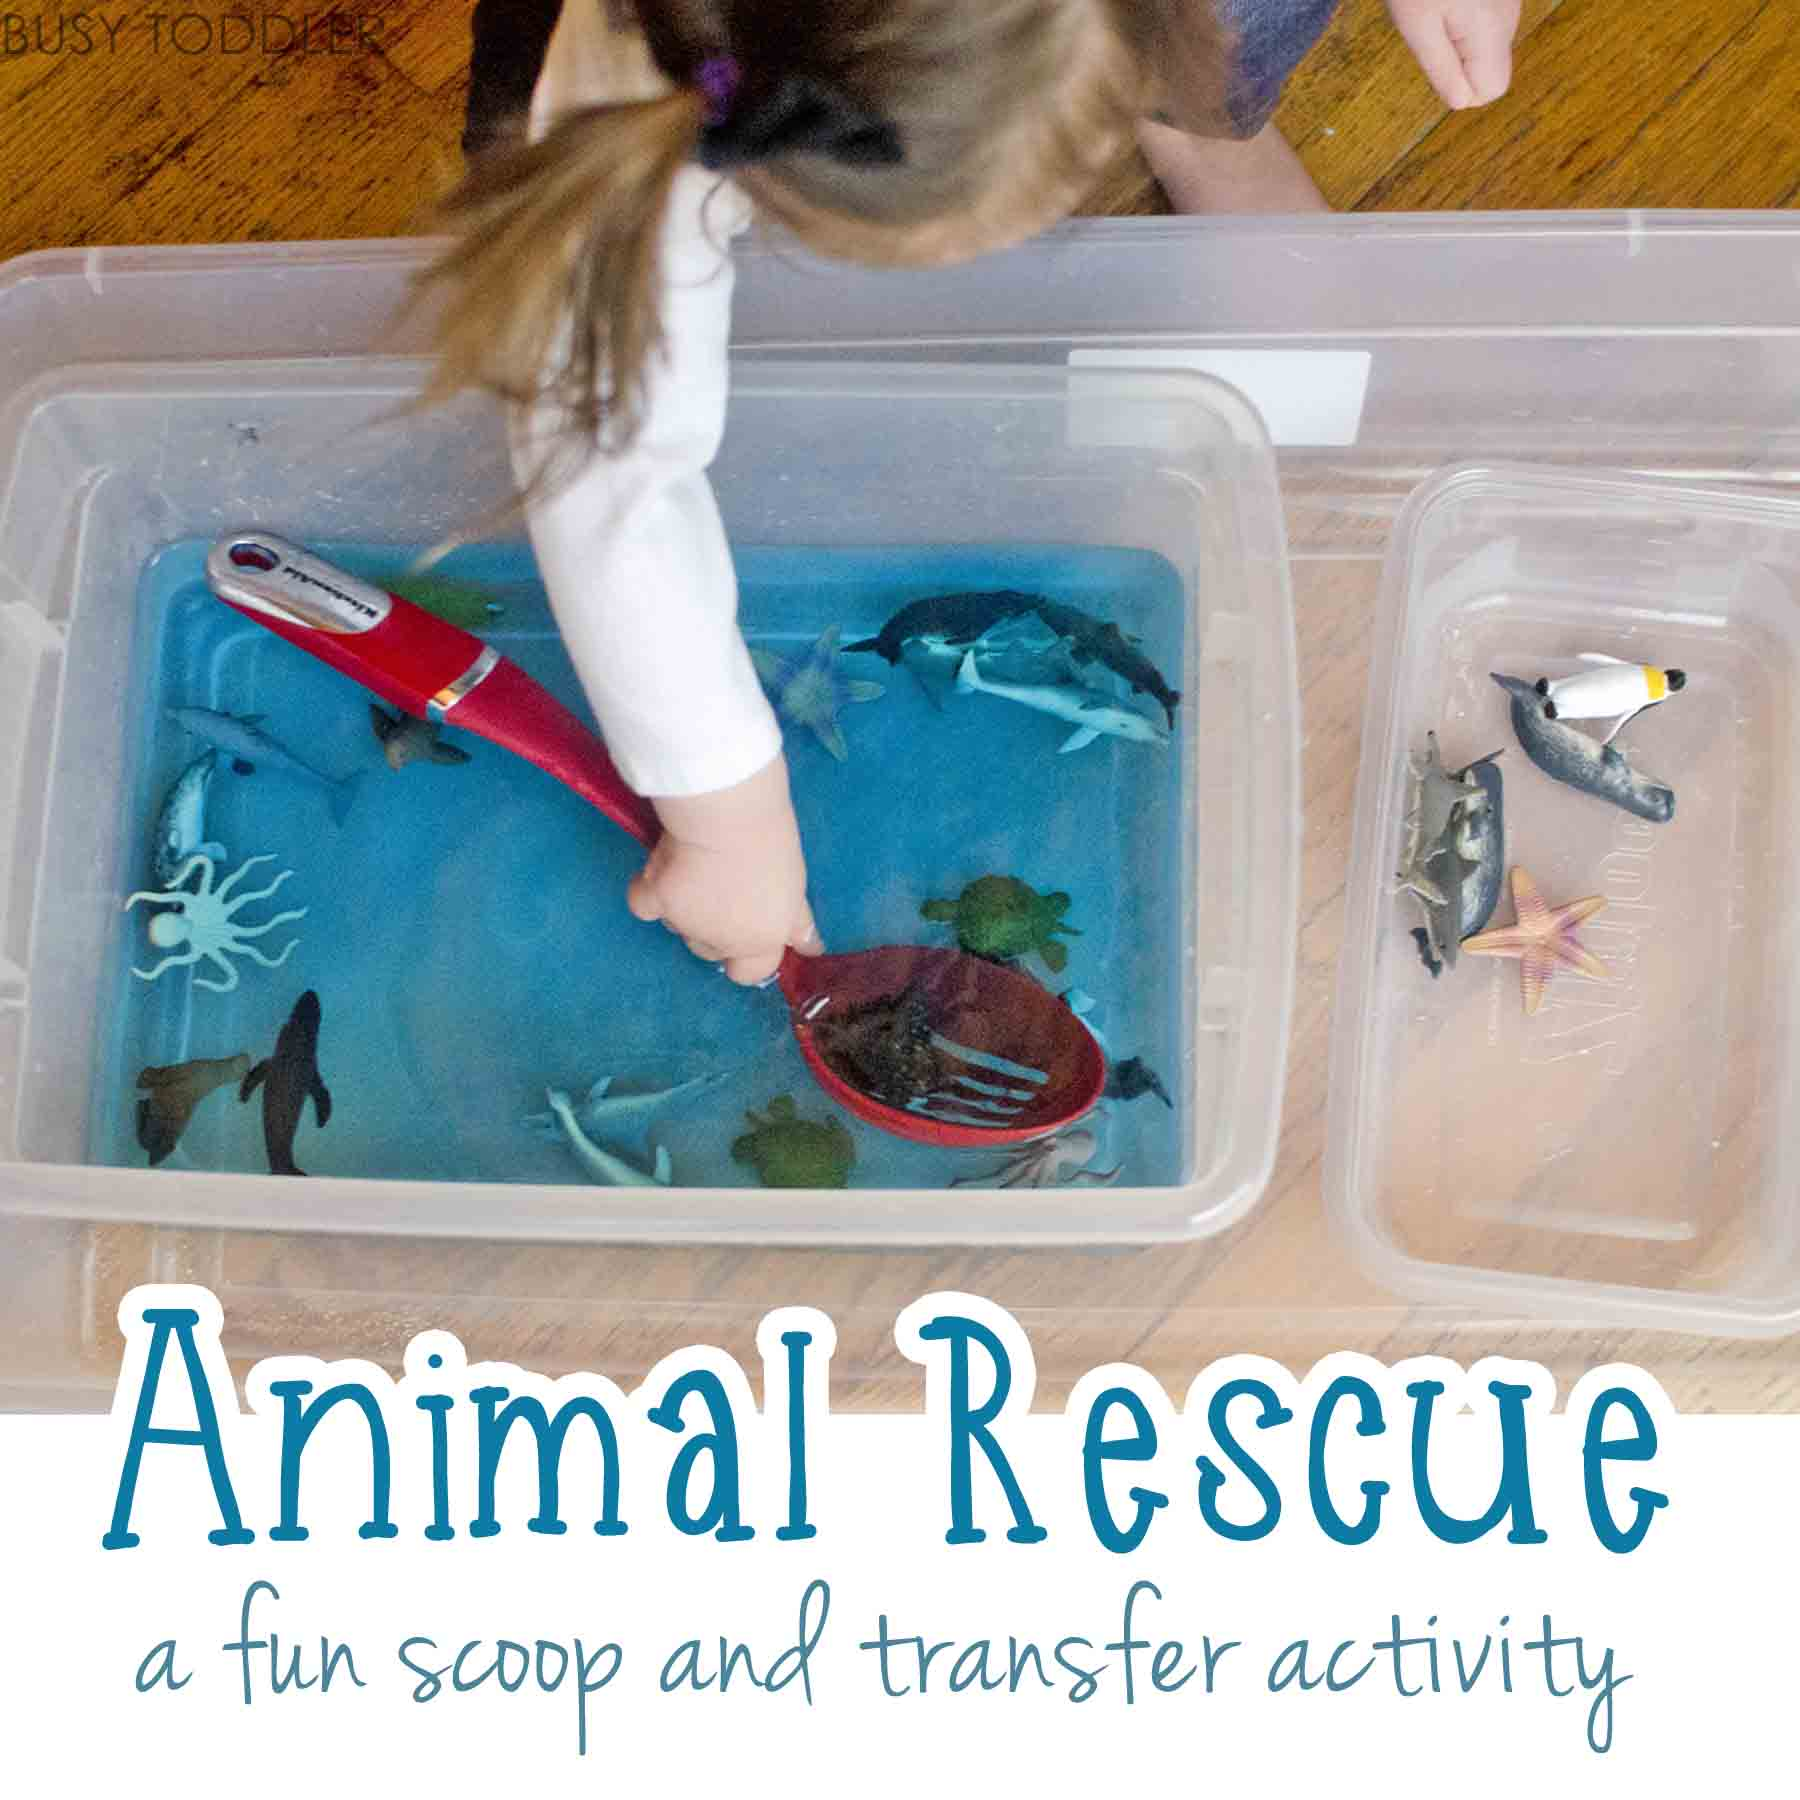 ANIMAL RESCUE: A fun scoop and transfer activity; easy indoor activity; water play activity; life skill activity